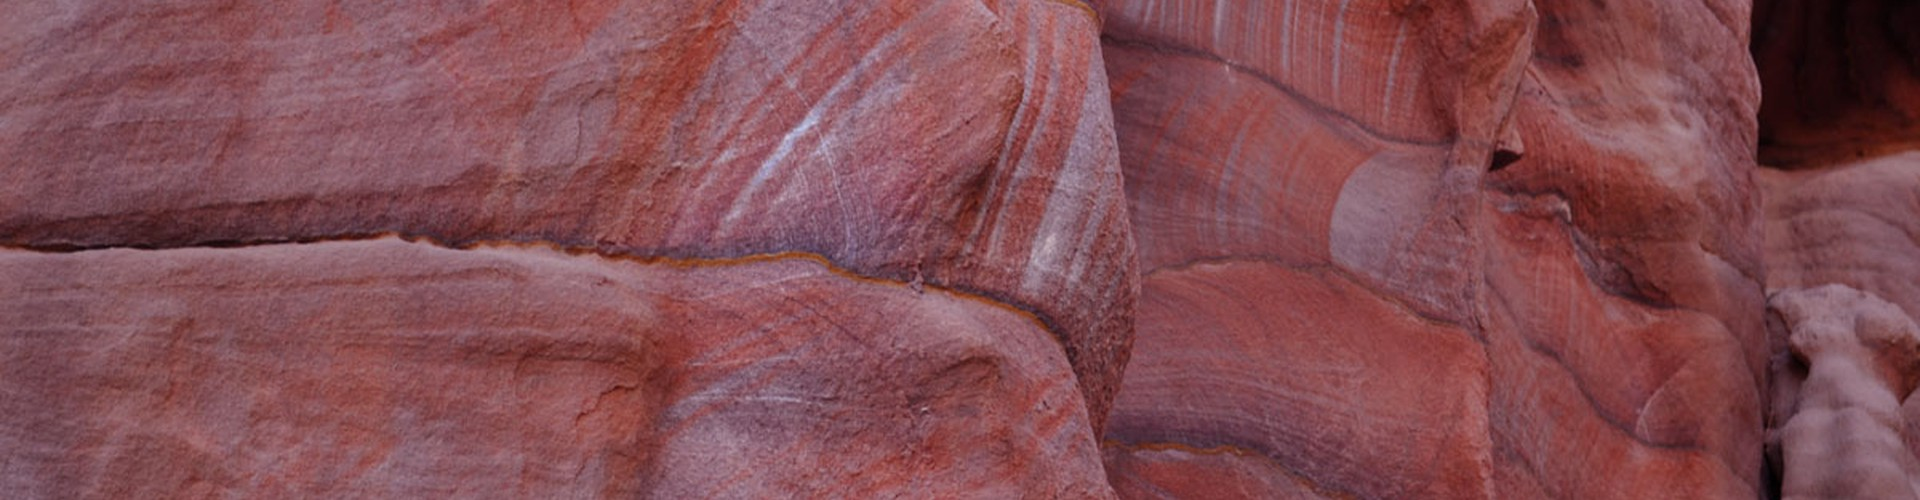 Sandstones of Petra (Credit: Pierrick Nicolet, distributed via imaggeo.egu.eu)